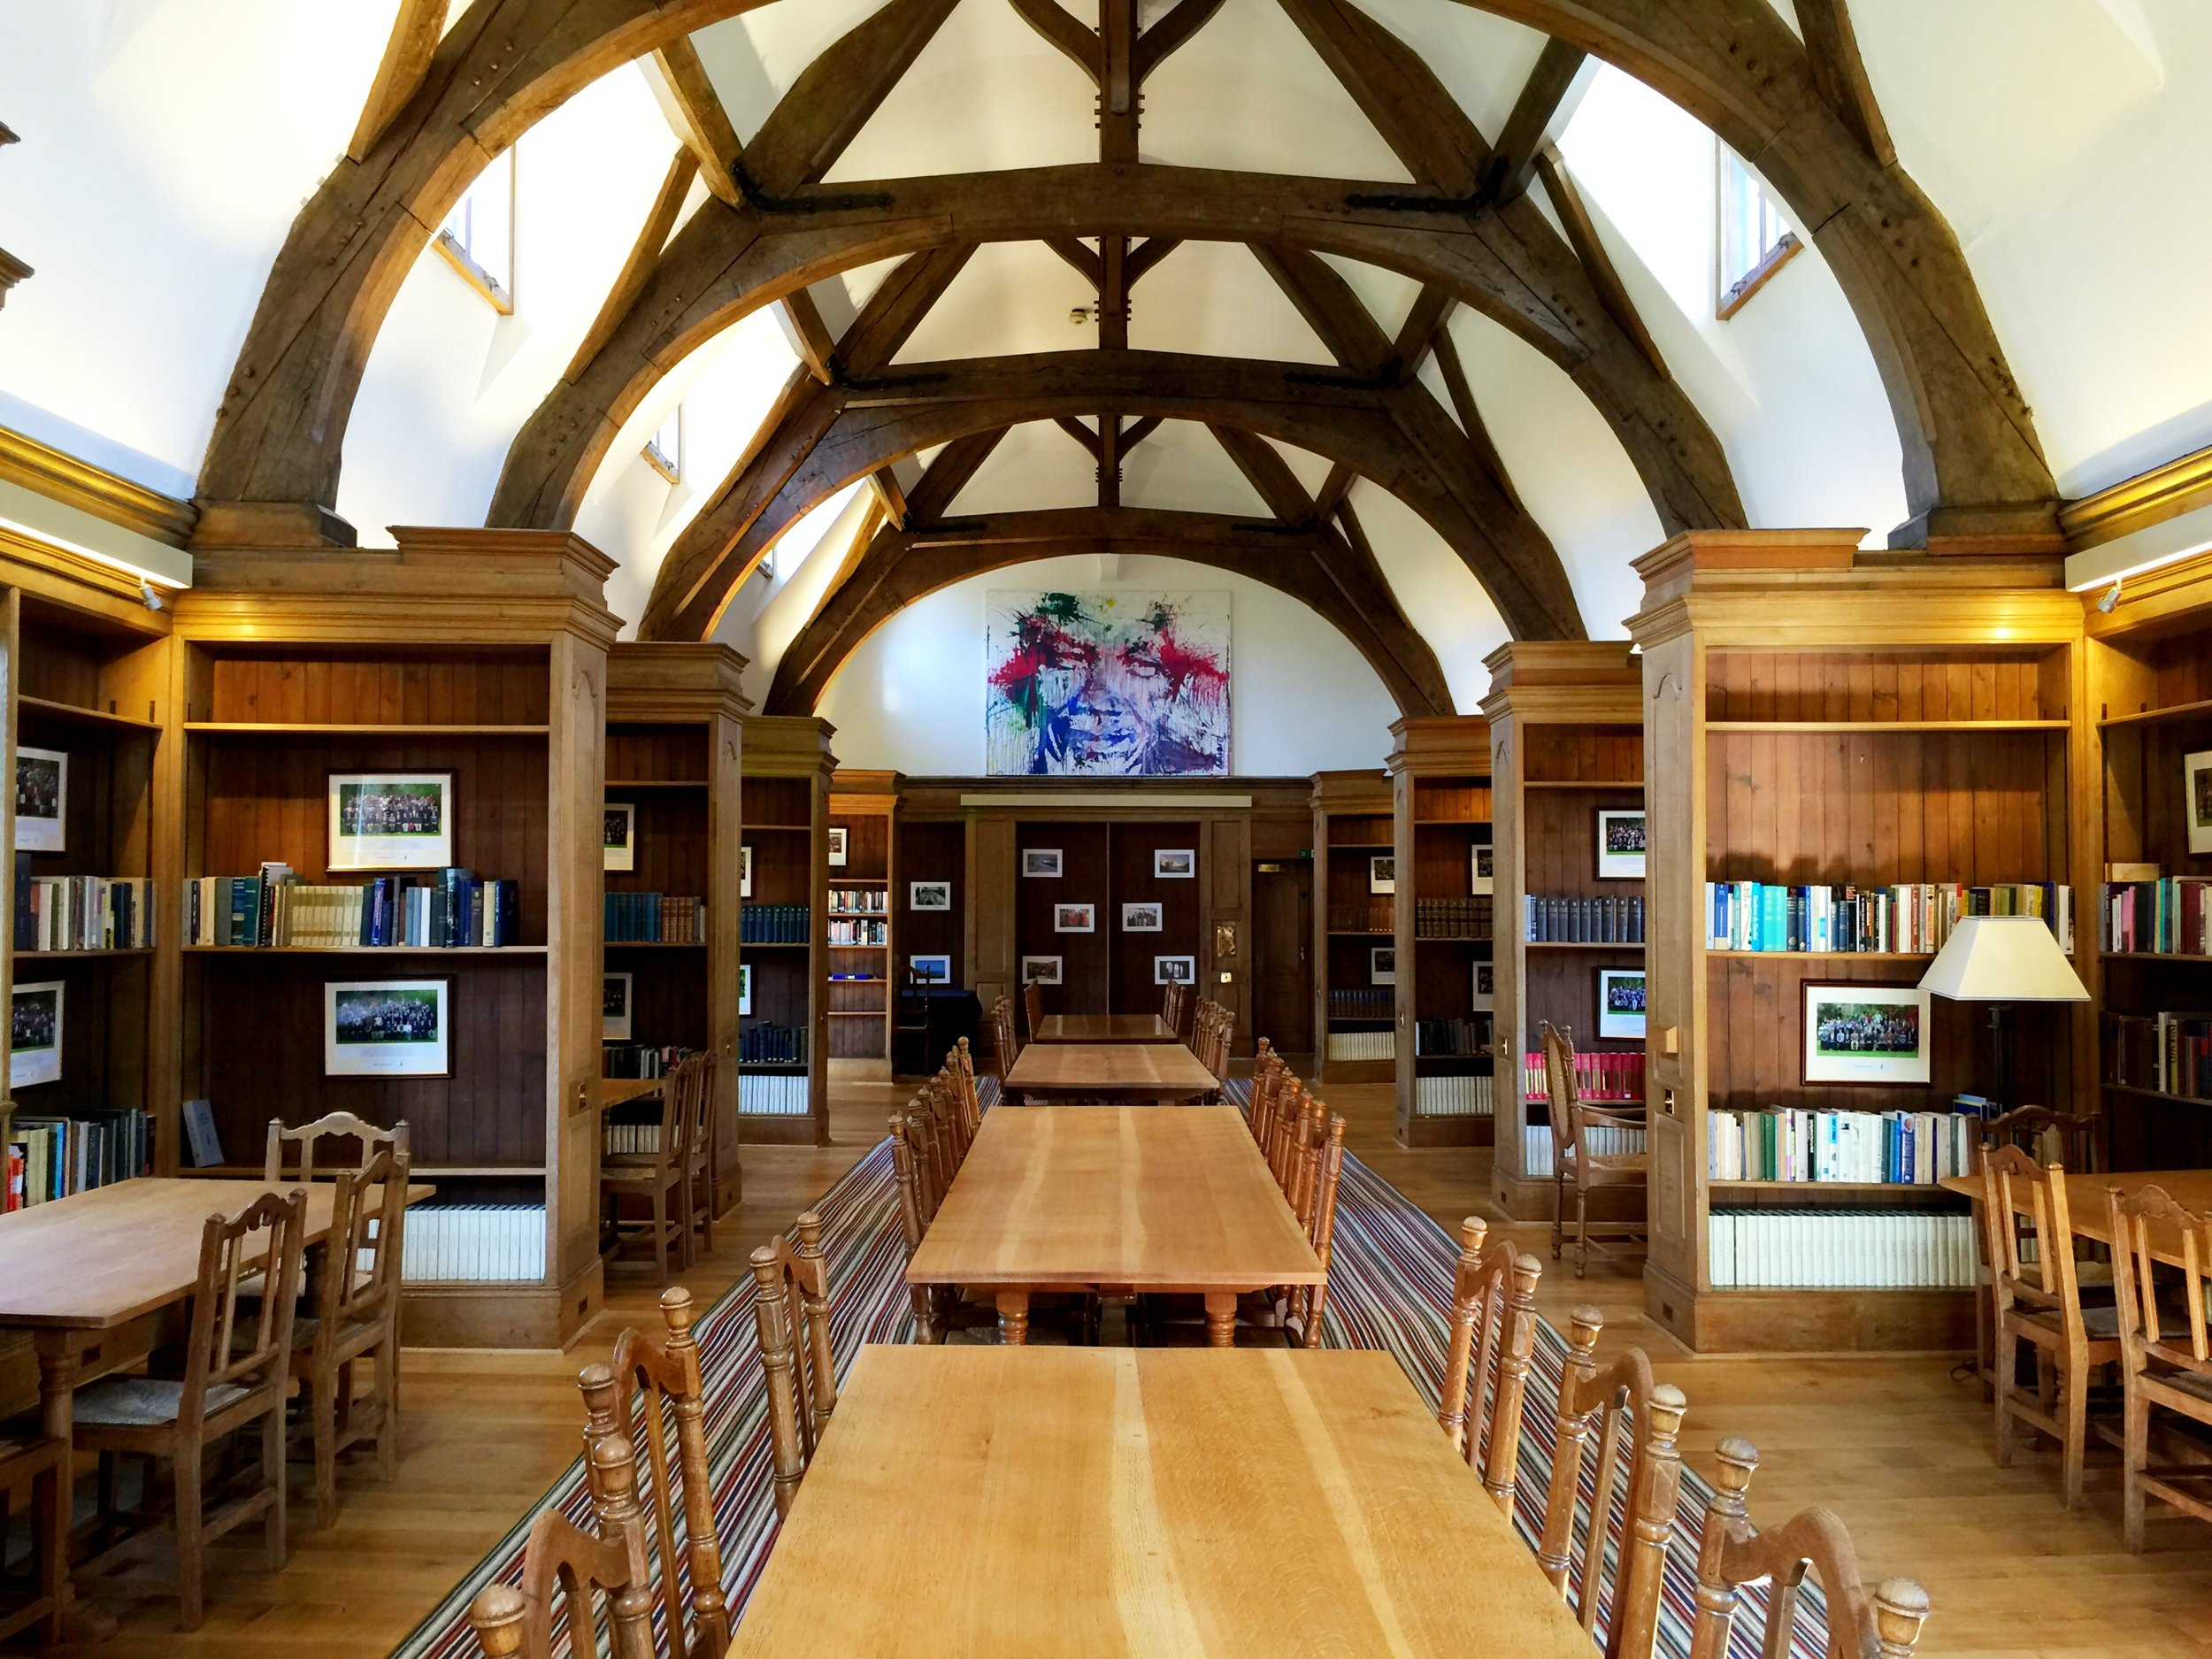 Rhodes_House_Rosebery_Room_central_tables_and_Mandela_painting2.jpg